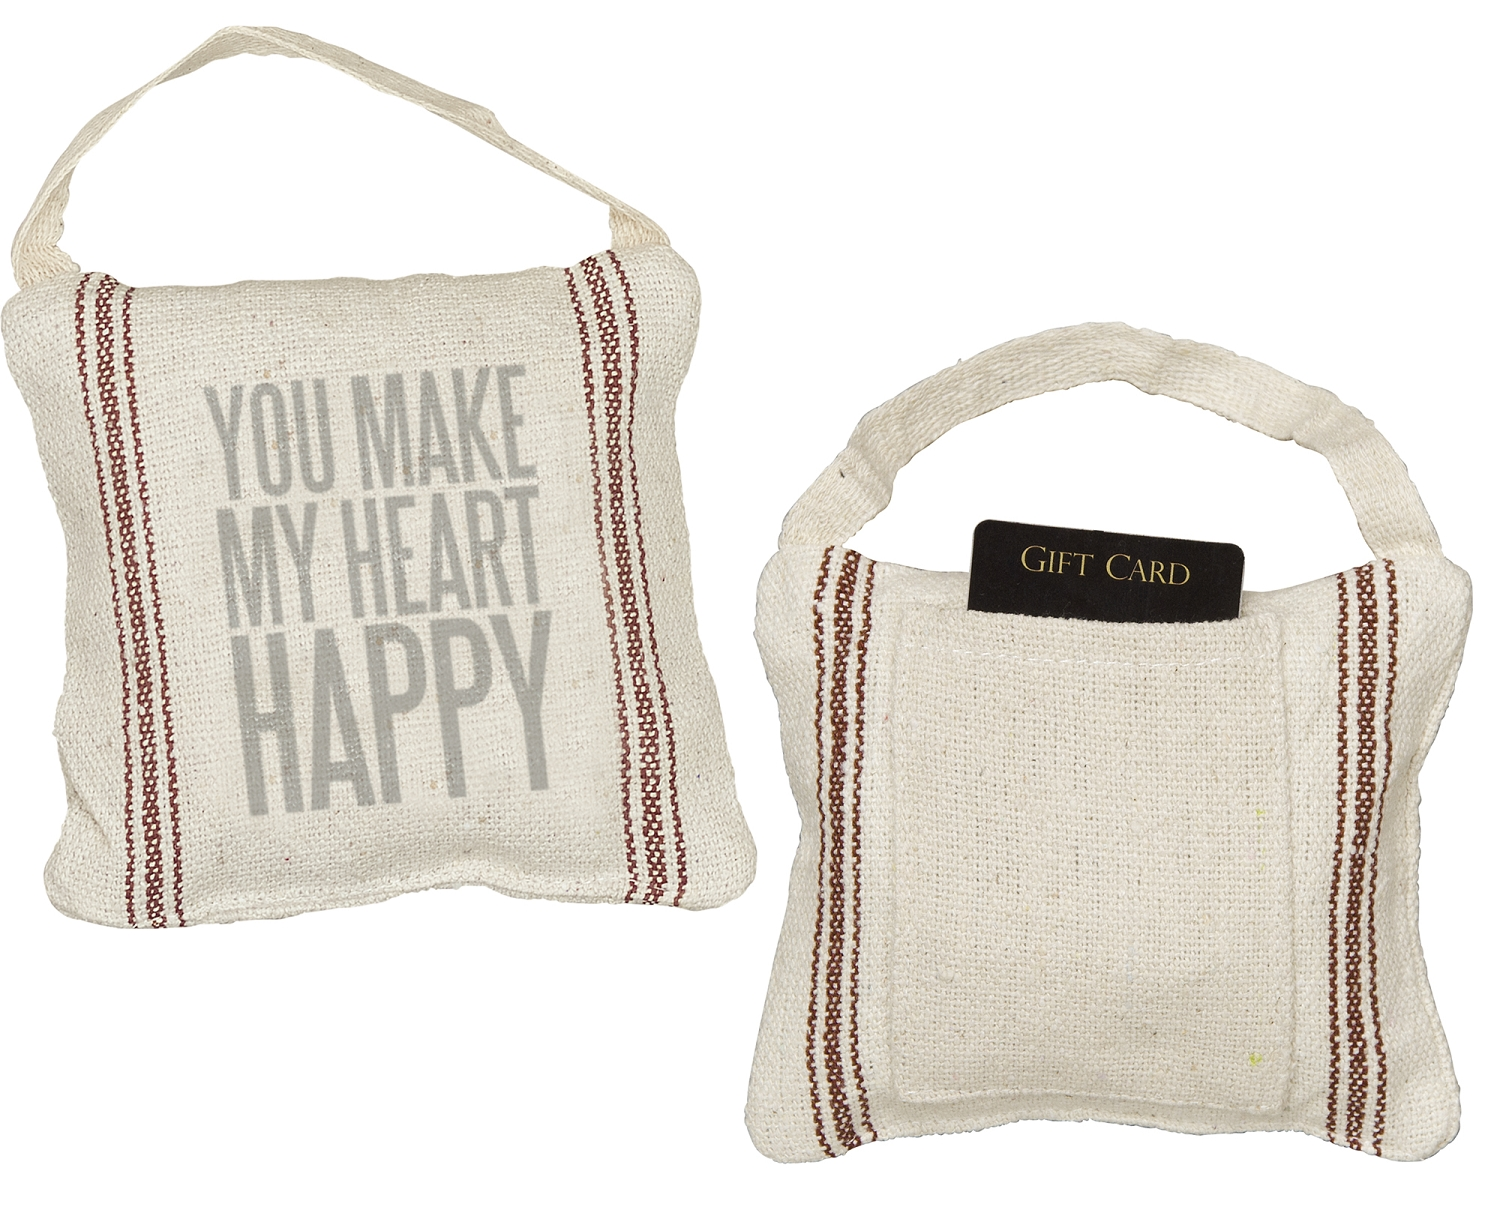 YOU MAKE MY HEART HAPPY MINI PILLOW $7